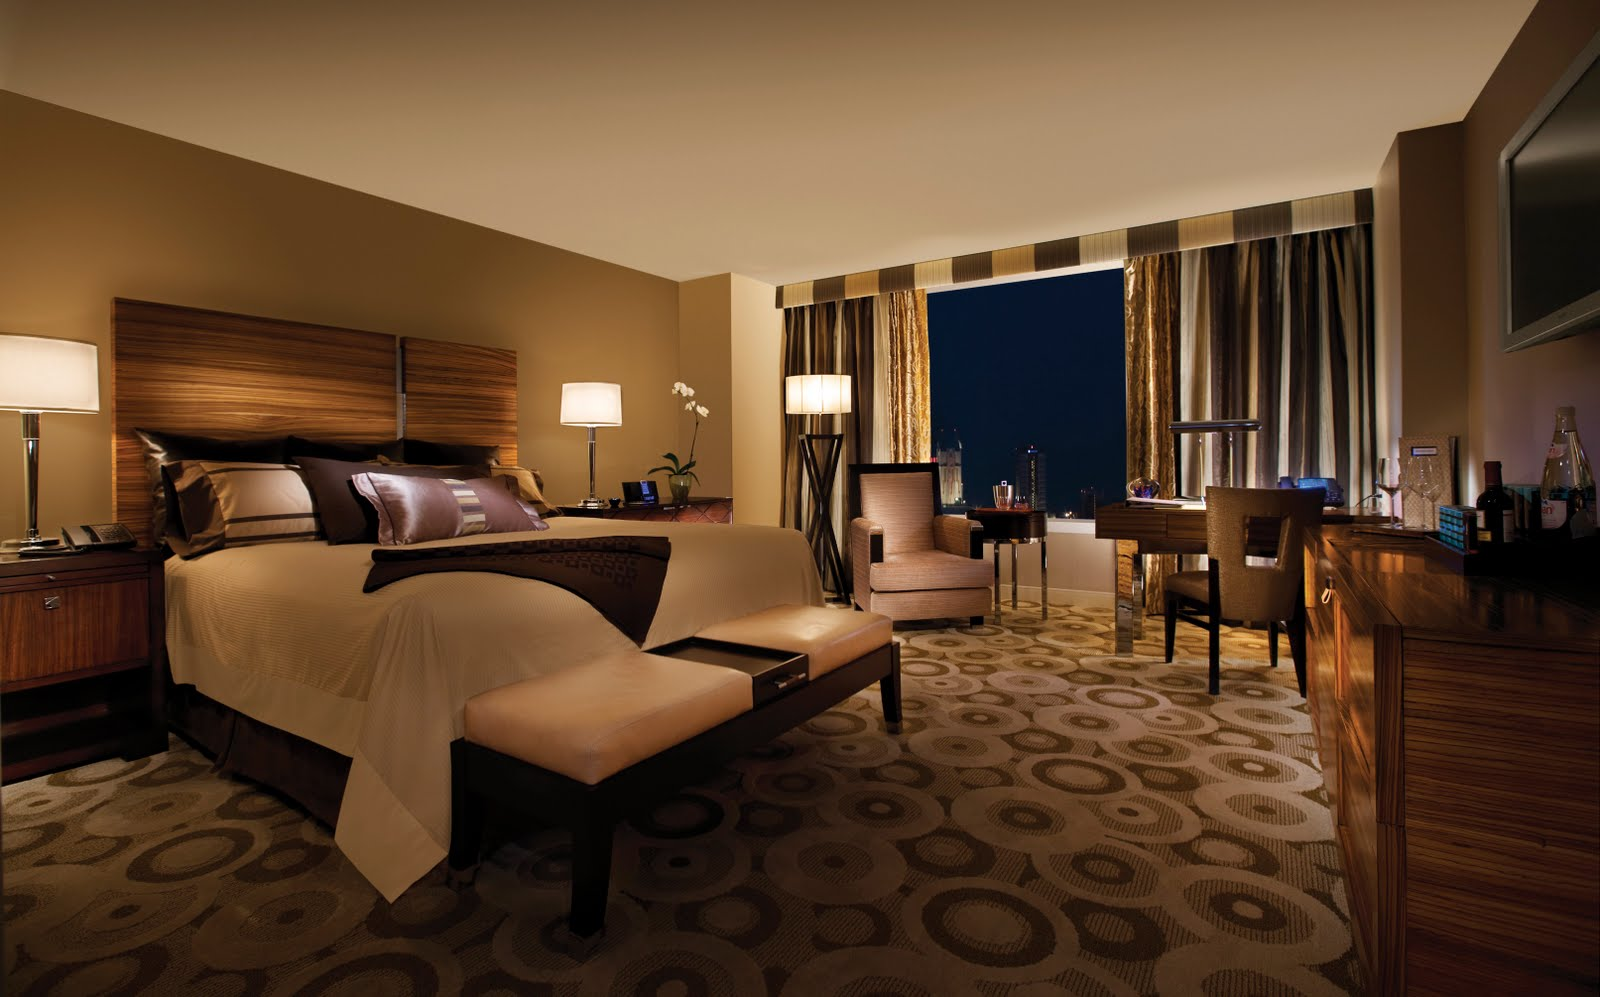 Ac casino hotel rooms